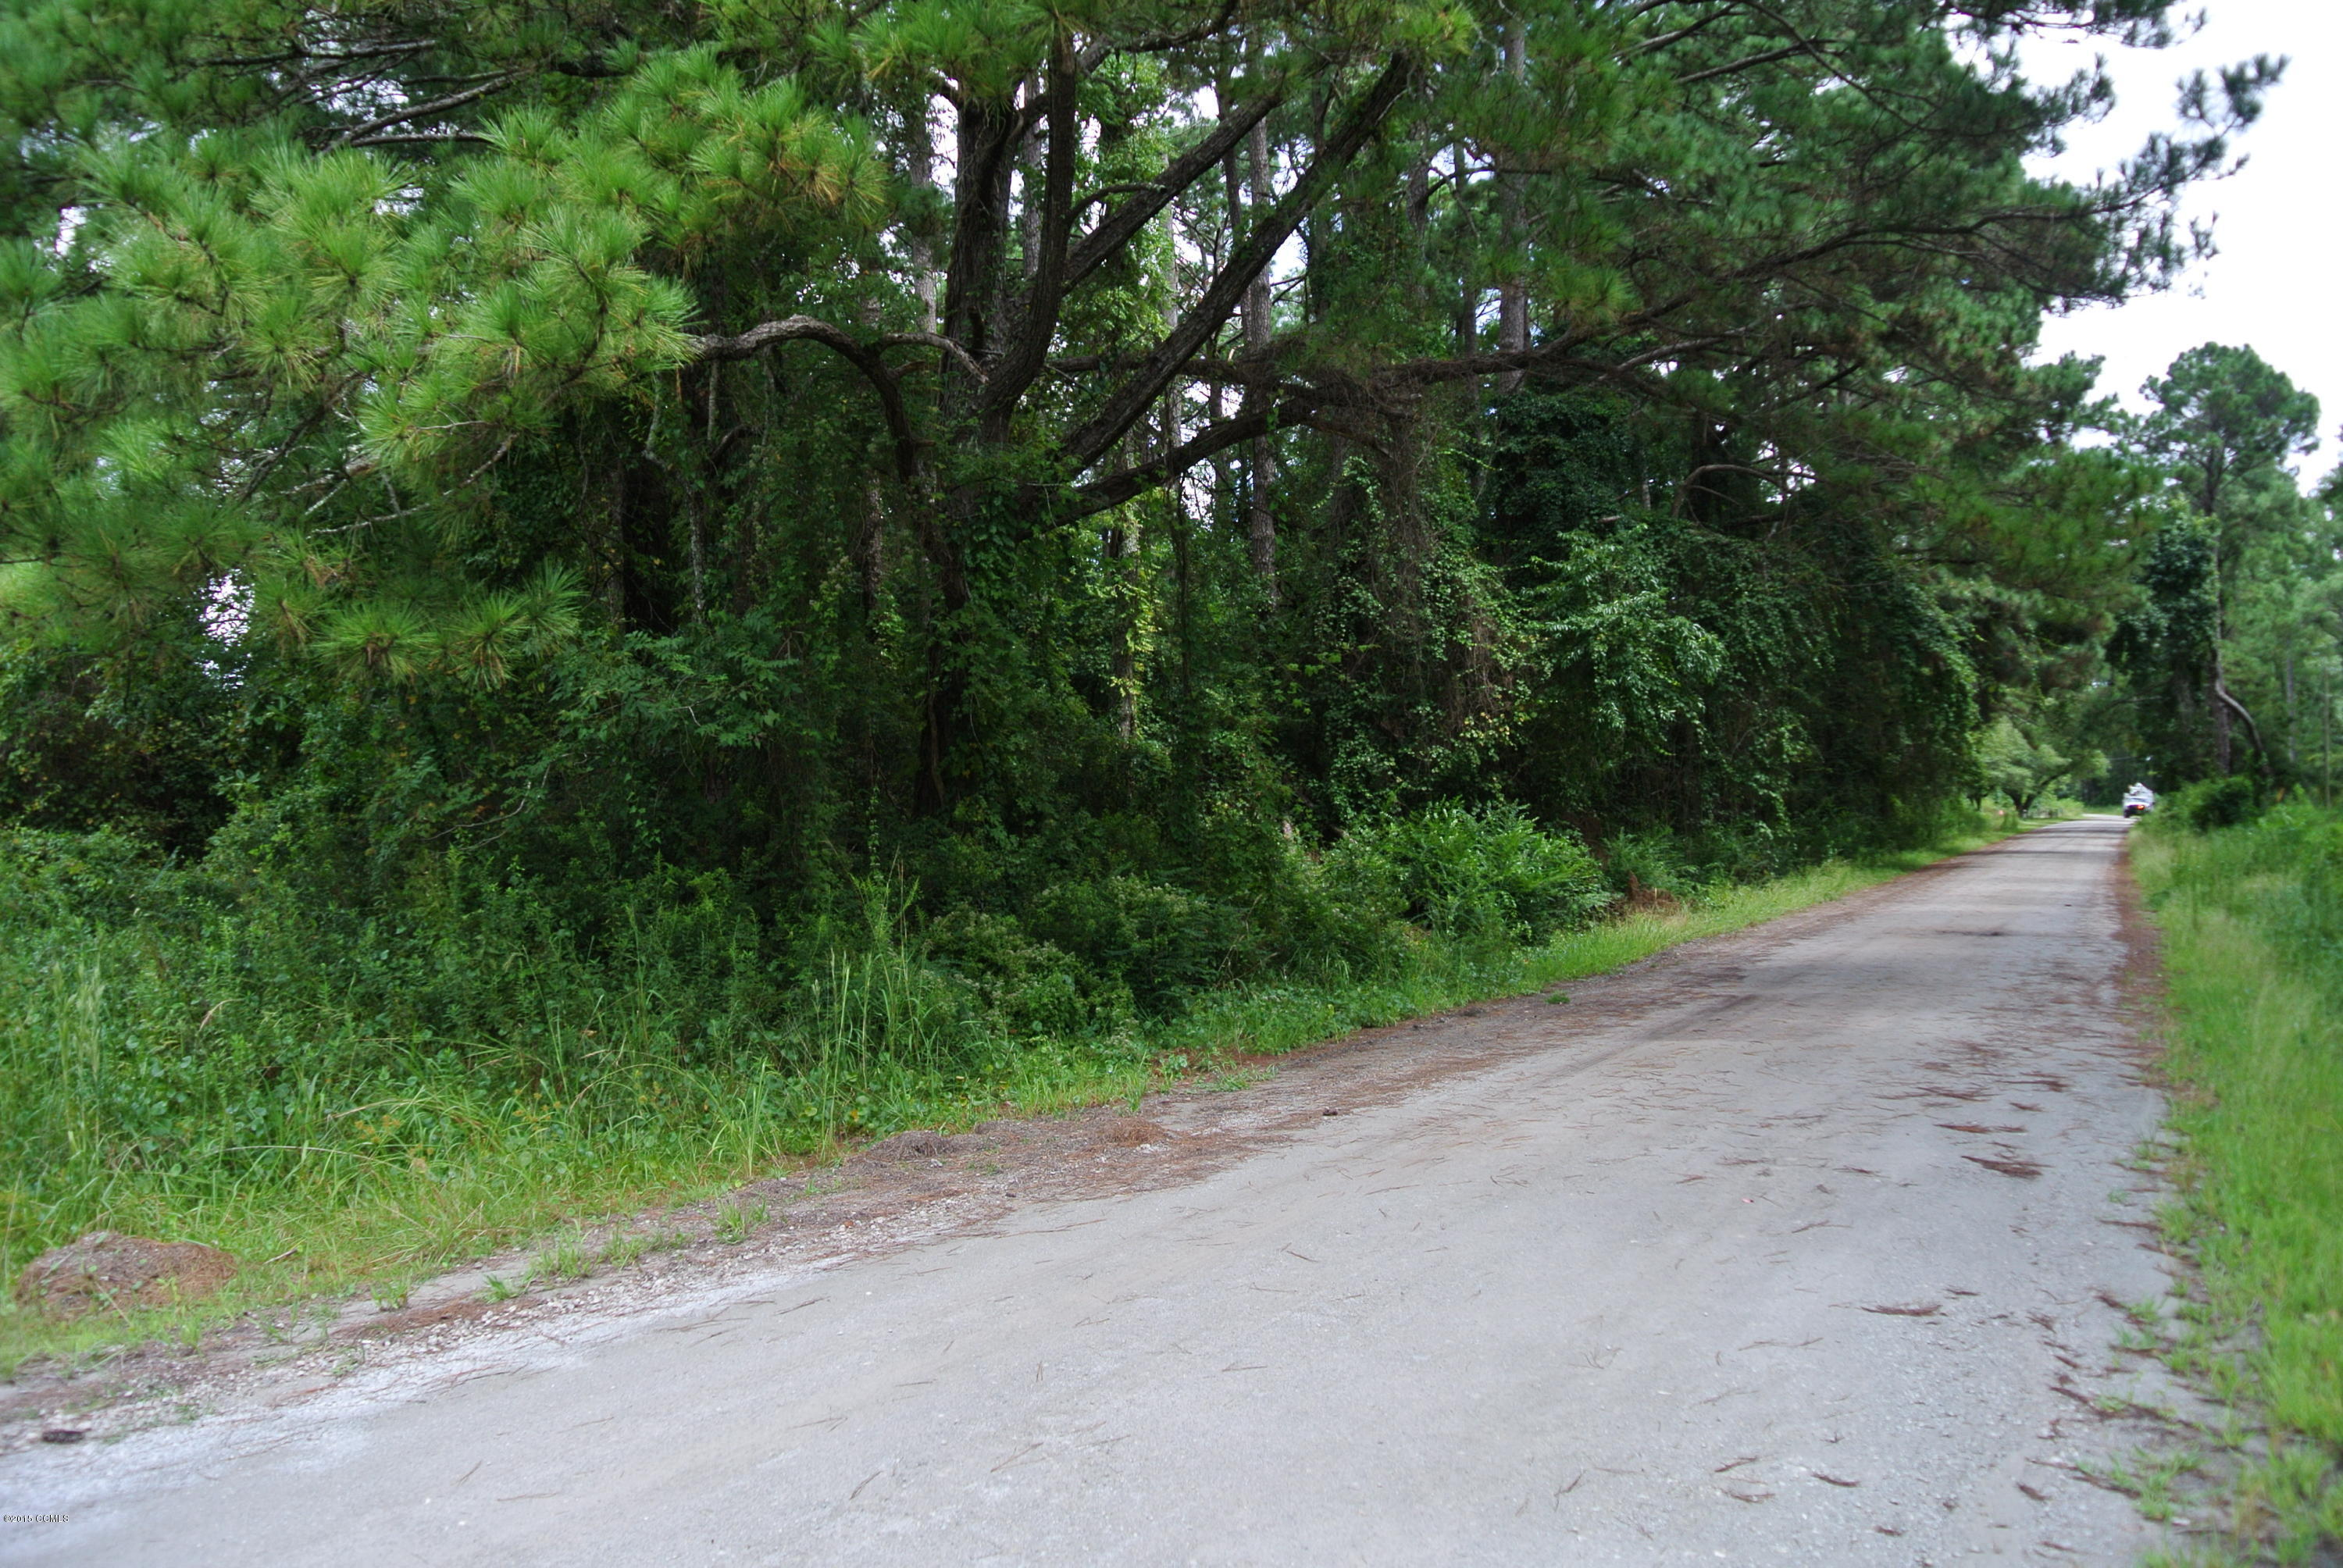 106 City Road, Smyrna, North Carolina 28579, ,Residential land,For sale,City,11504433